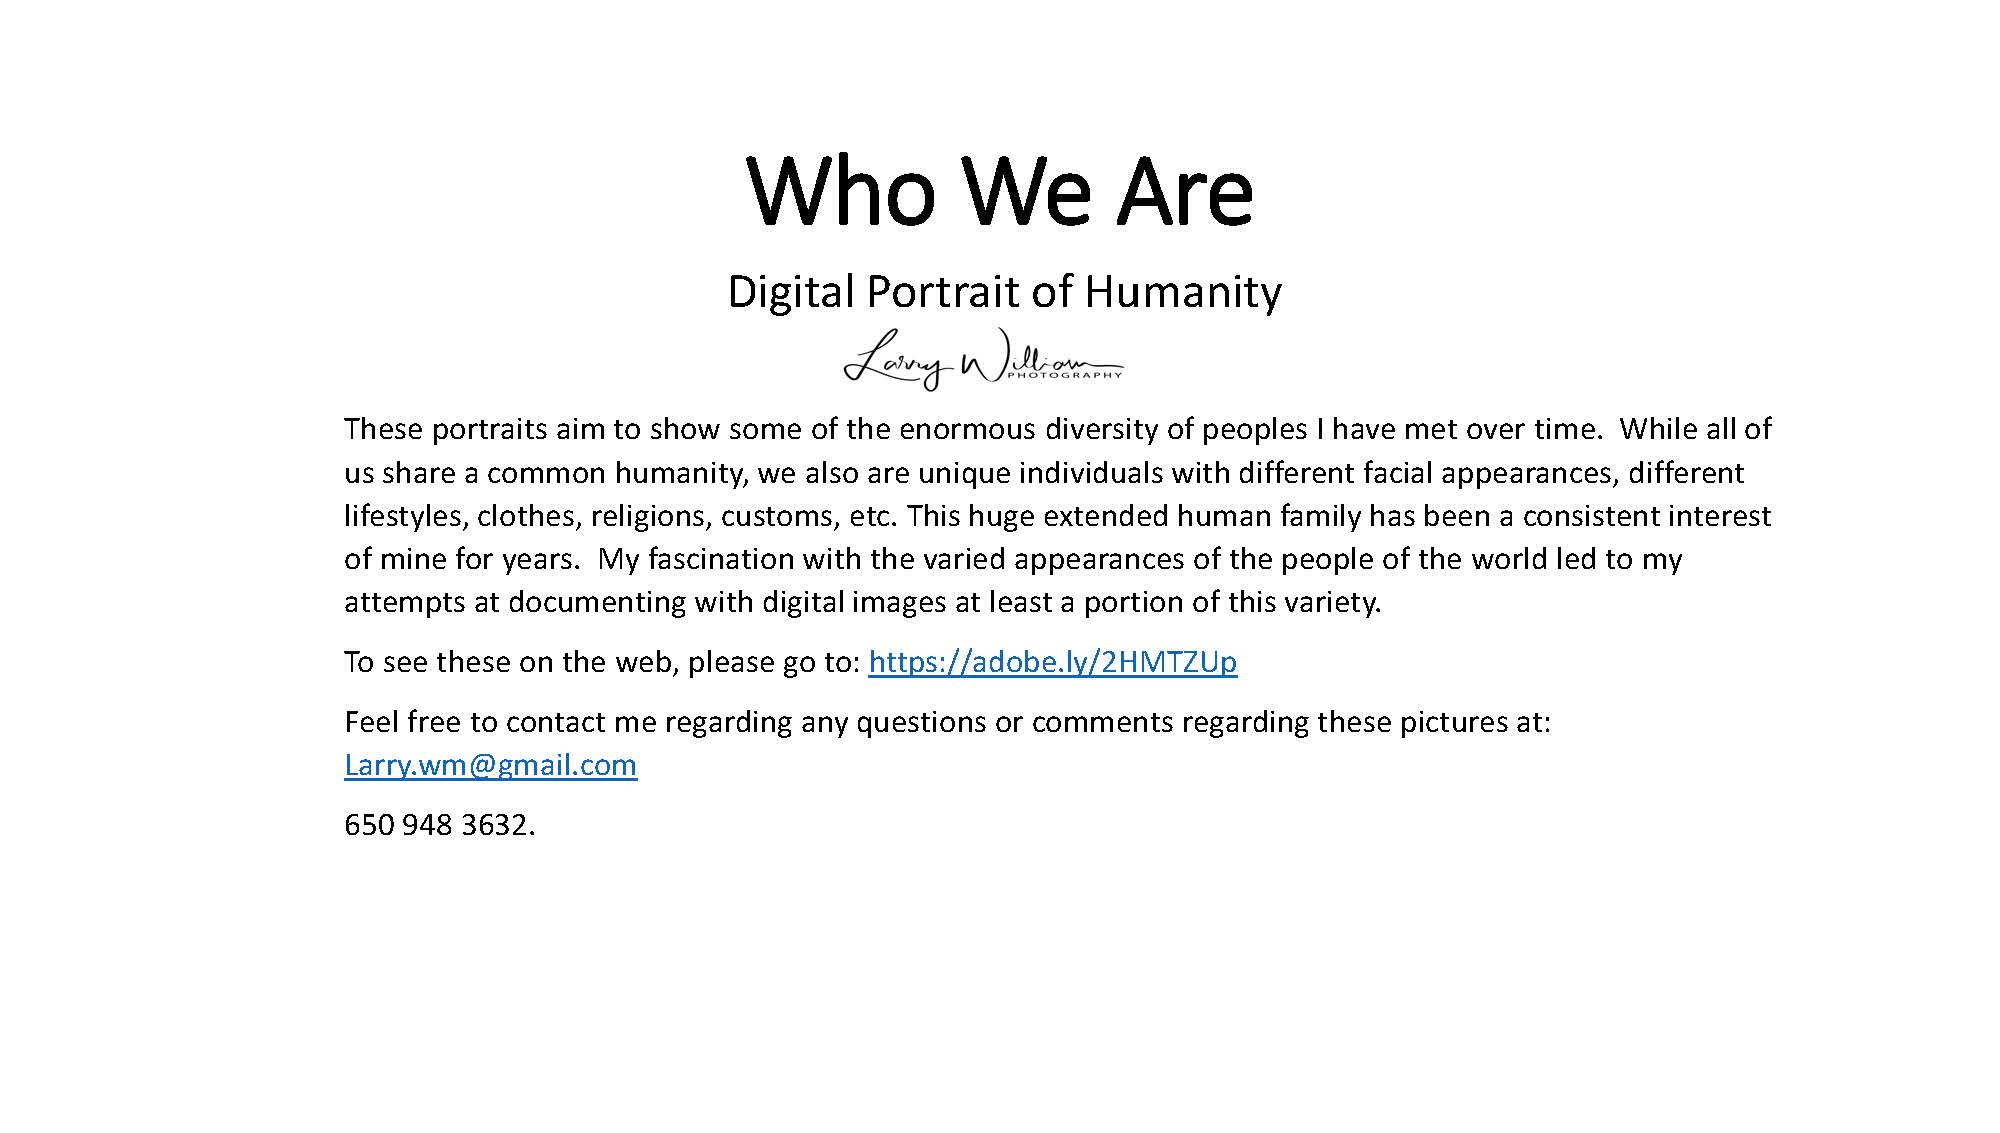 Who We Are: Digital Portrait of Humanity - Larry William